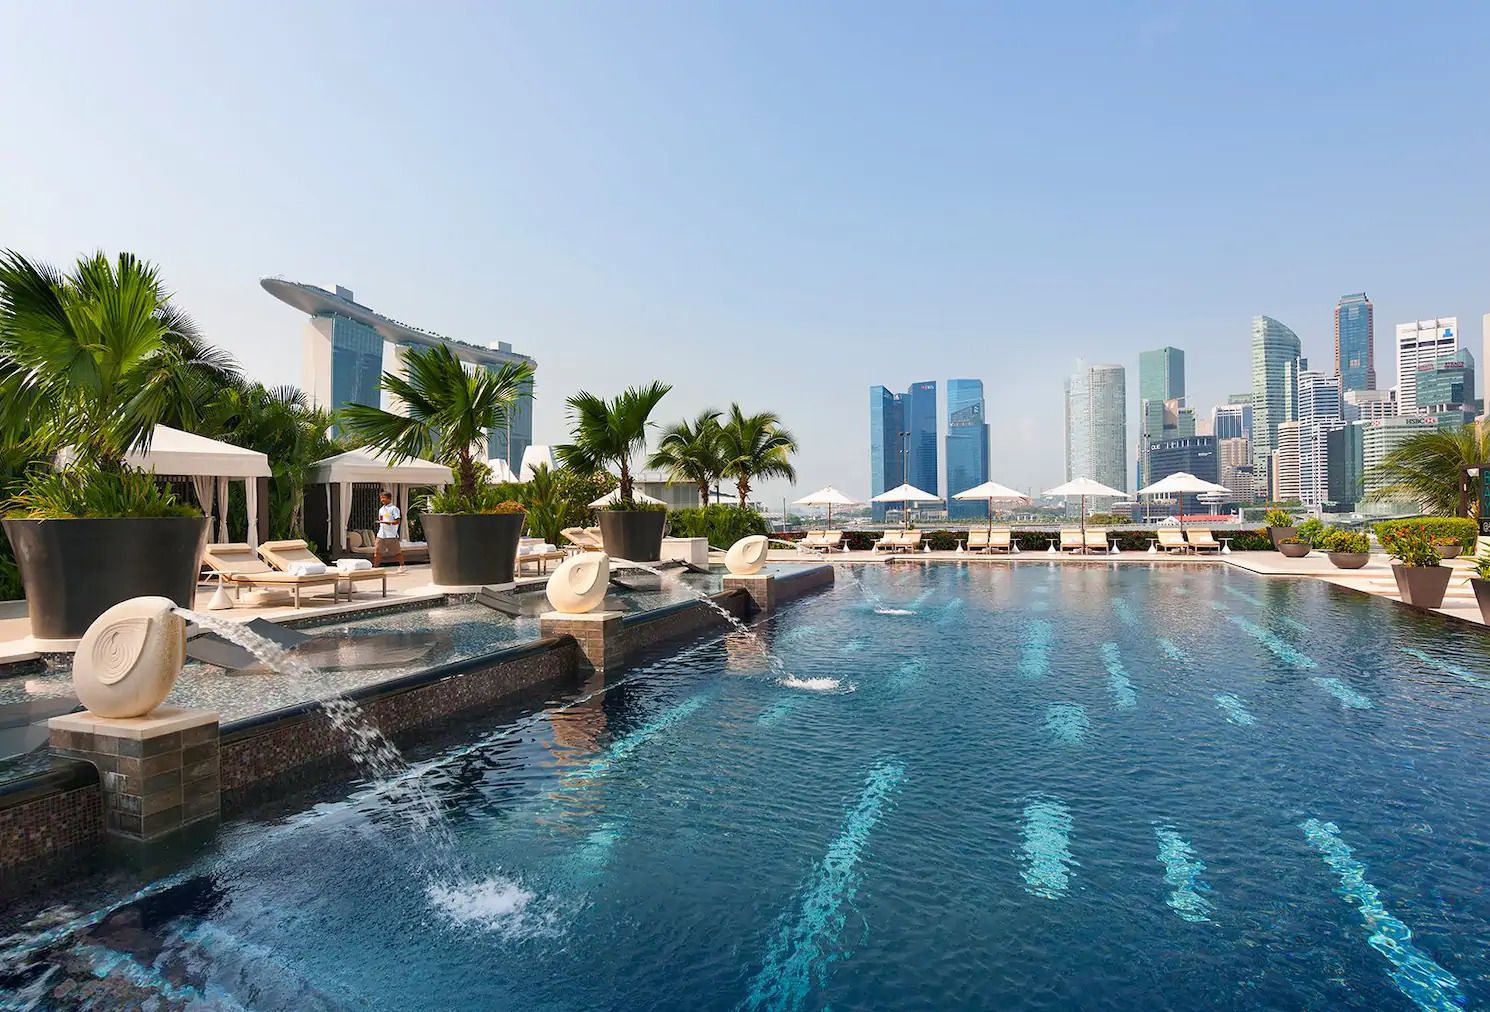 Planning a Staycation? These are the Most Instagram-Worthy Hotel Swimming Pools in Singapore